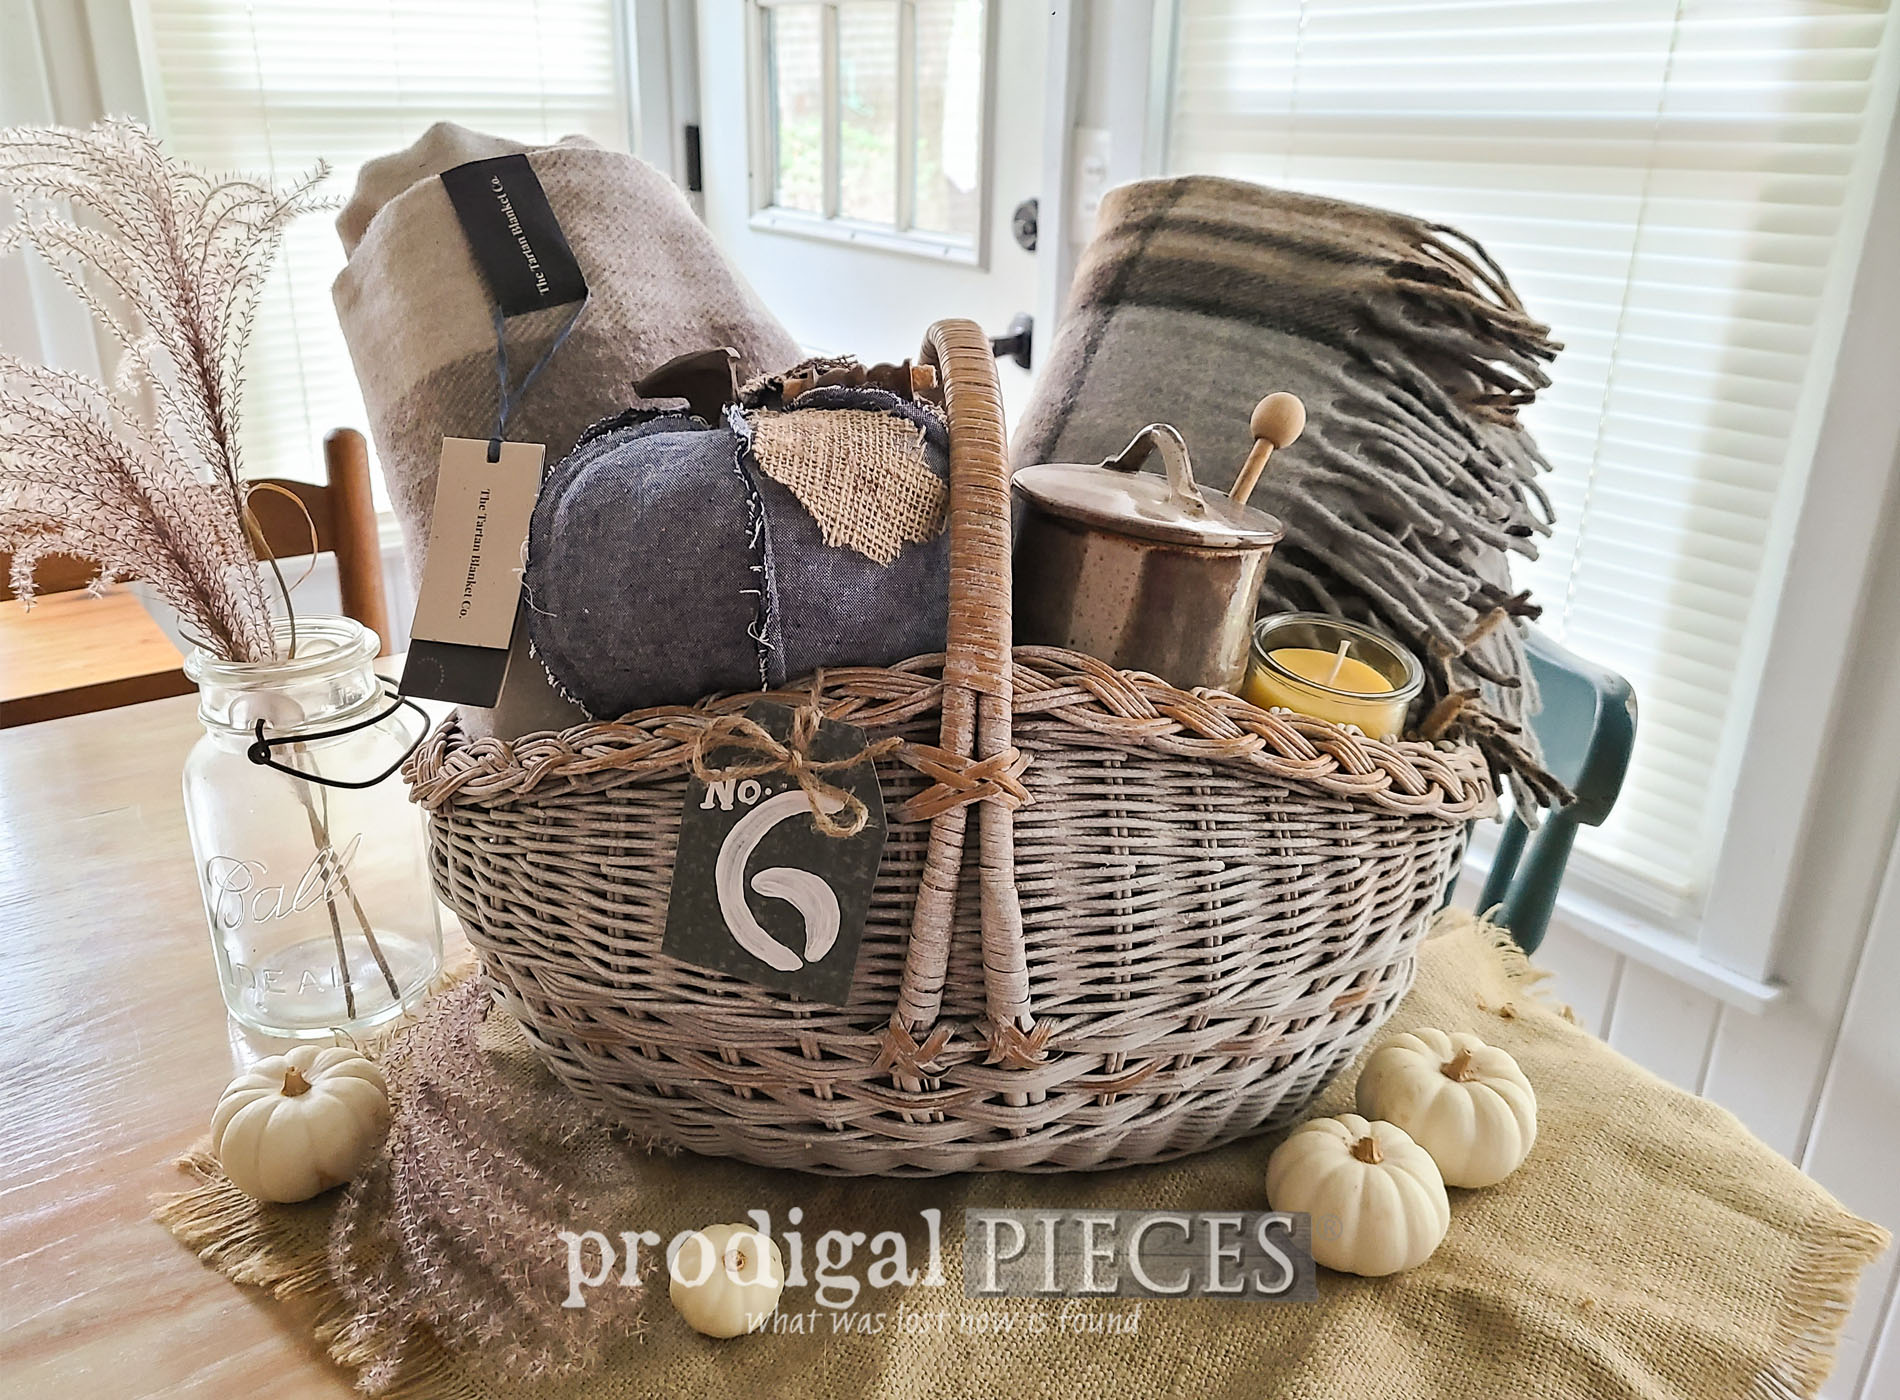 Featured DIY Harvest Gift Basket from Thrifted Find by Larissa of Prodigal Pieces | prodigalpieces.com #prodigalpieces #diy #giftidea #basket #autman #fall #upcycled